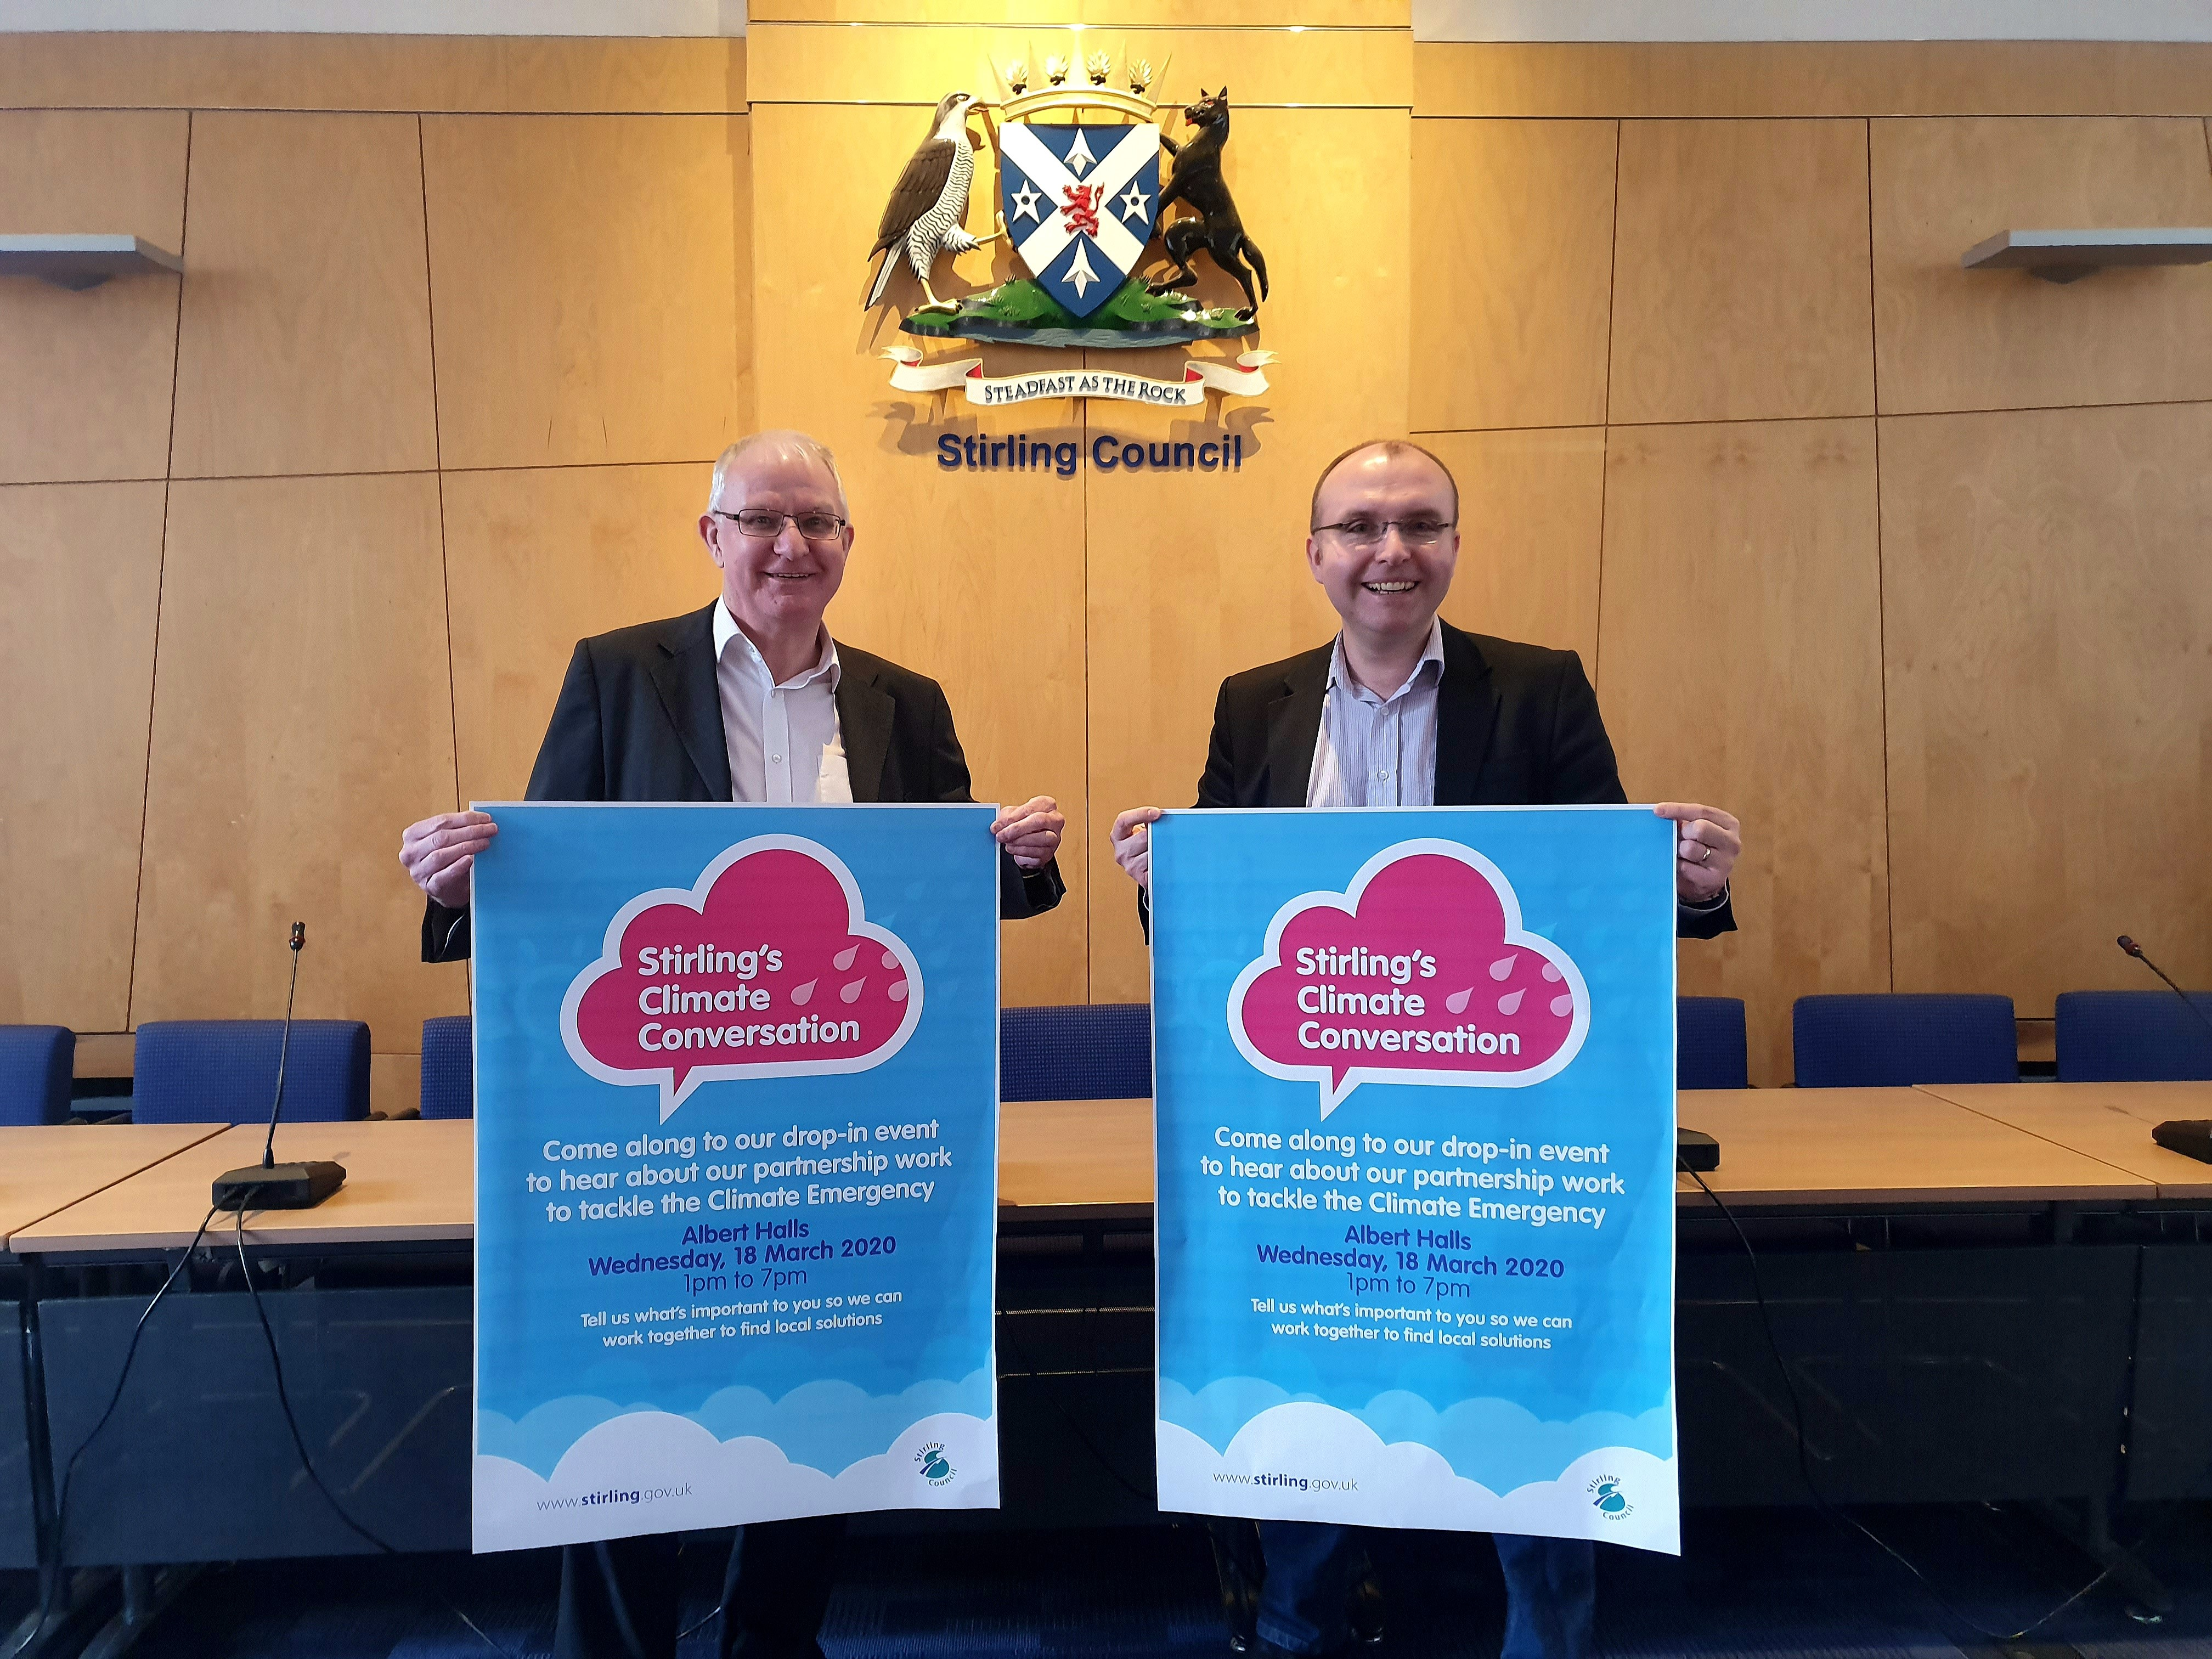 Cllrs Thomson and Gibson promote the Climate Survey and Drop-in event at the Council chambers.